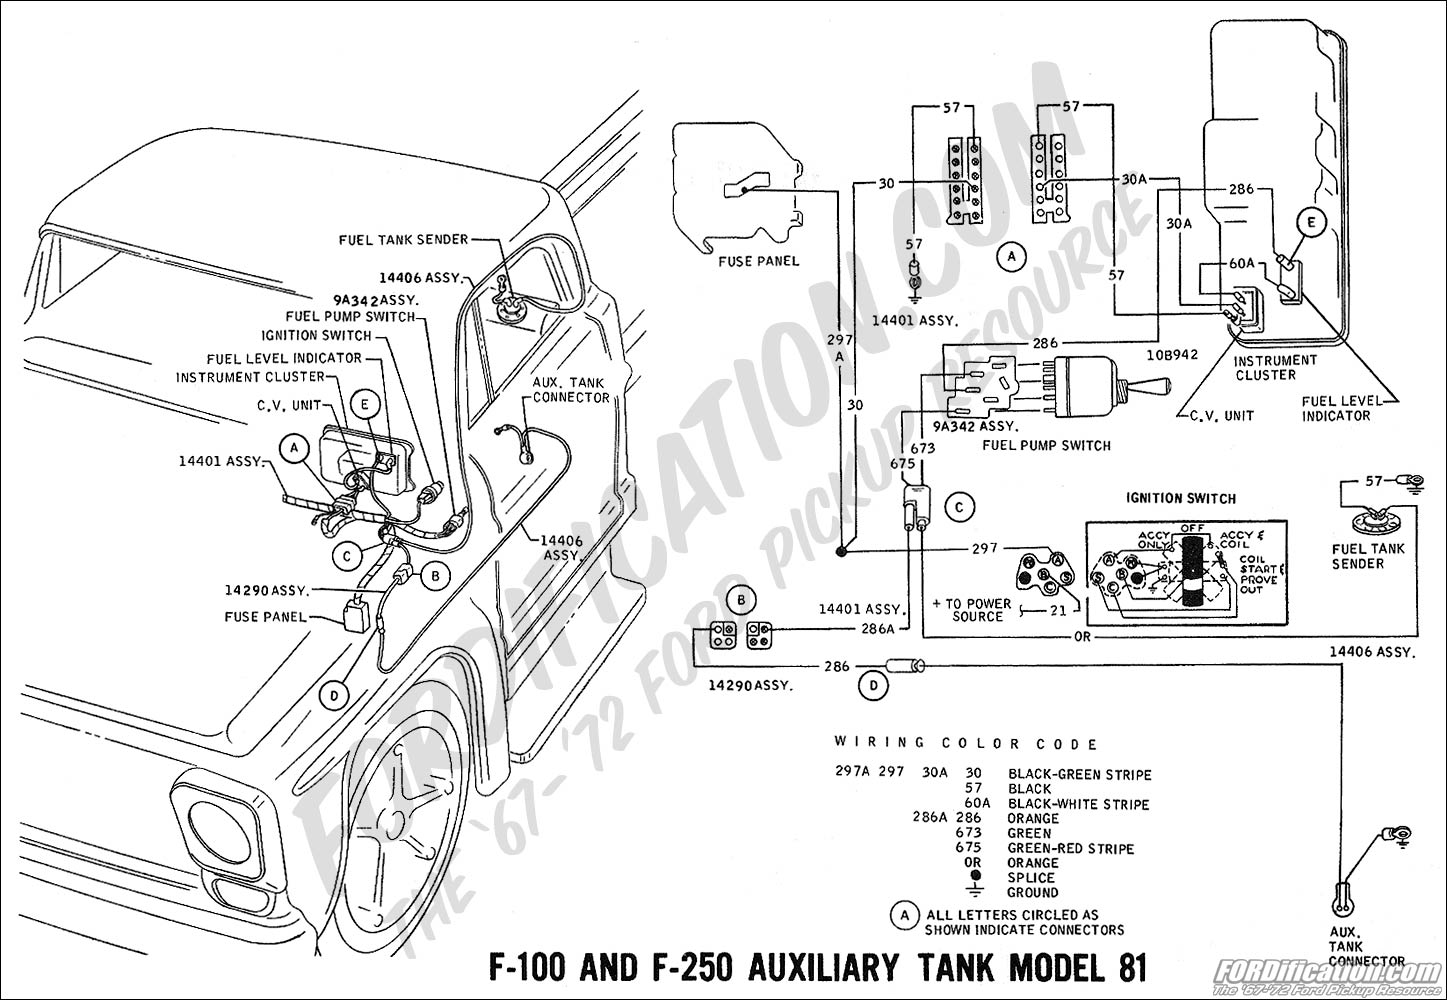 1981 Ford F150 Fuse Box Diagram Great Design Of Wiring Corvette F 100 Free Engine Image 2002 150 2001